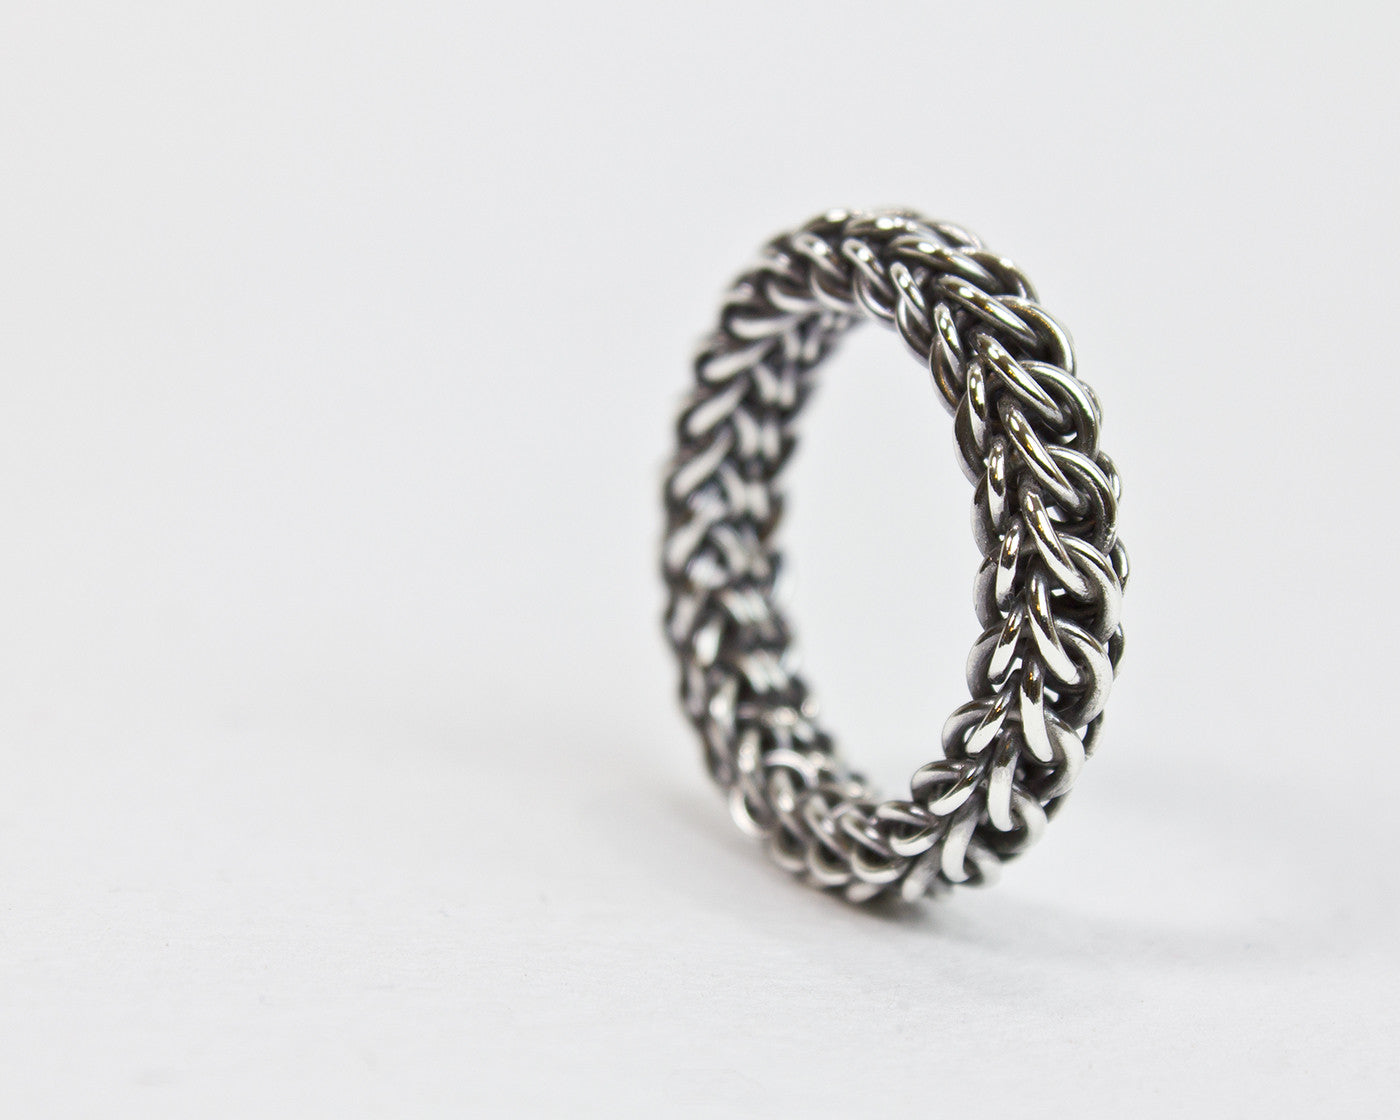 Fused Persianique Chainmaille Band Ring - Femailler